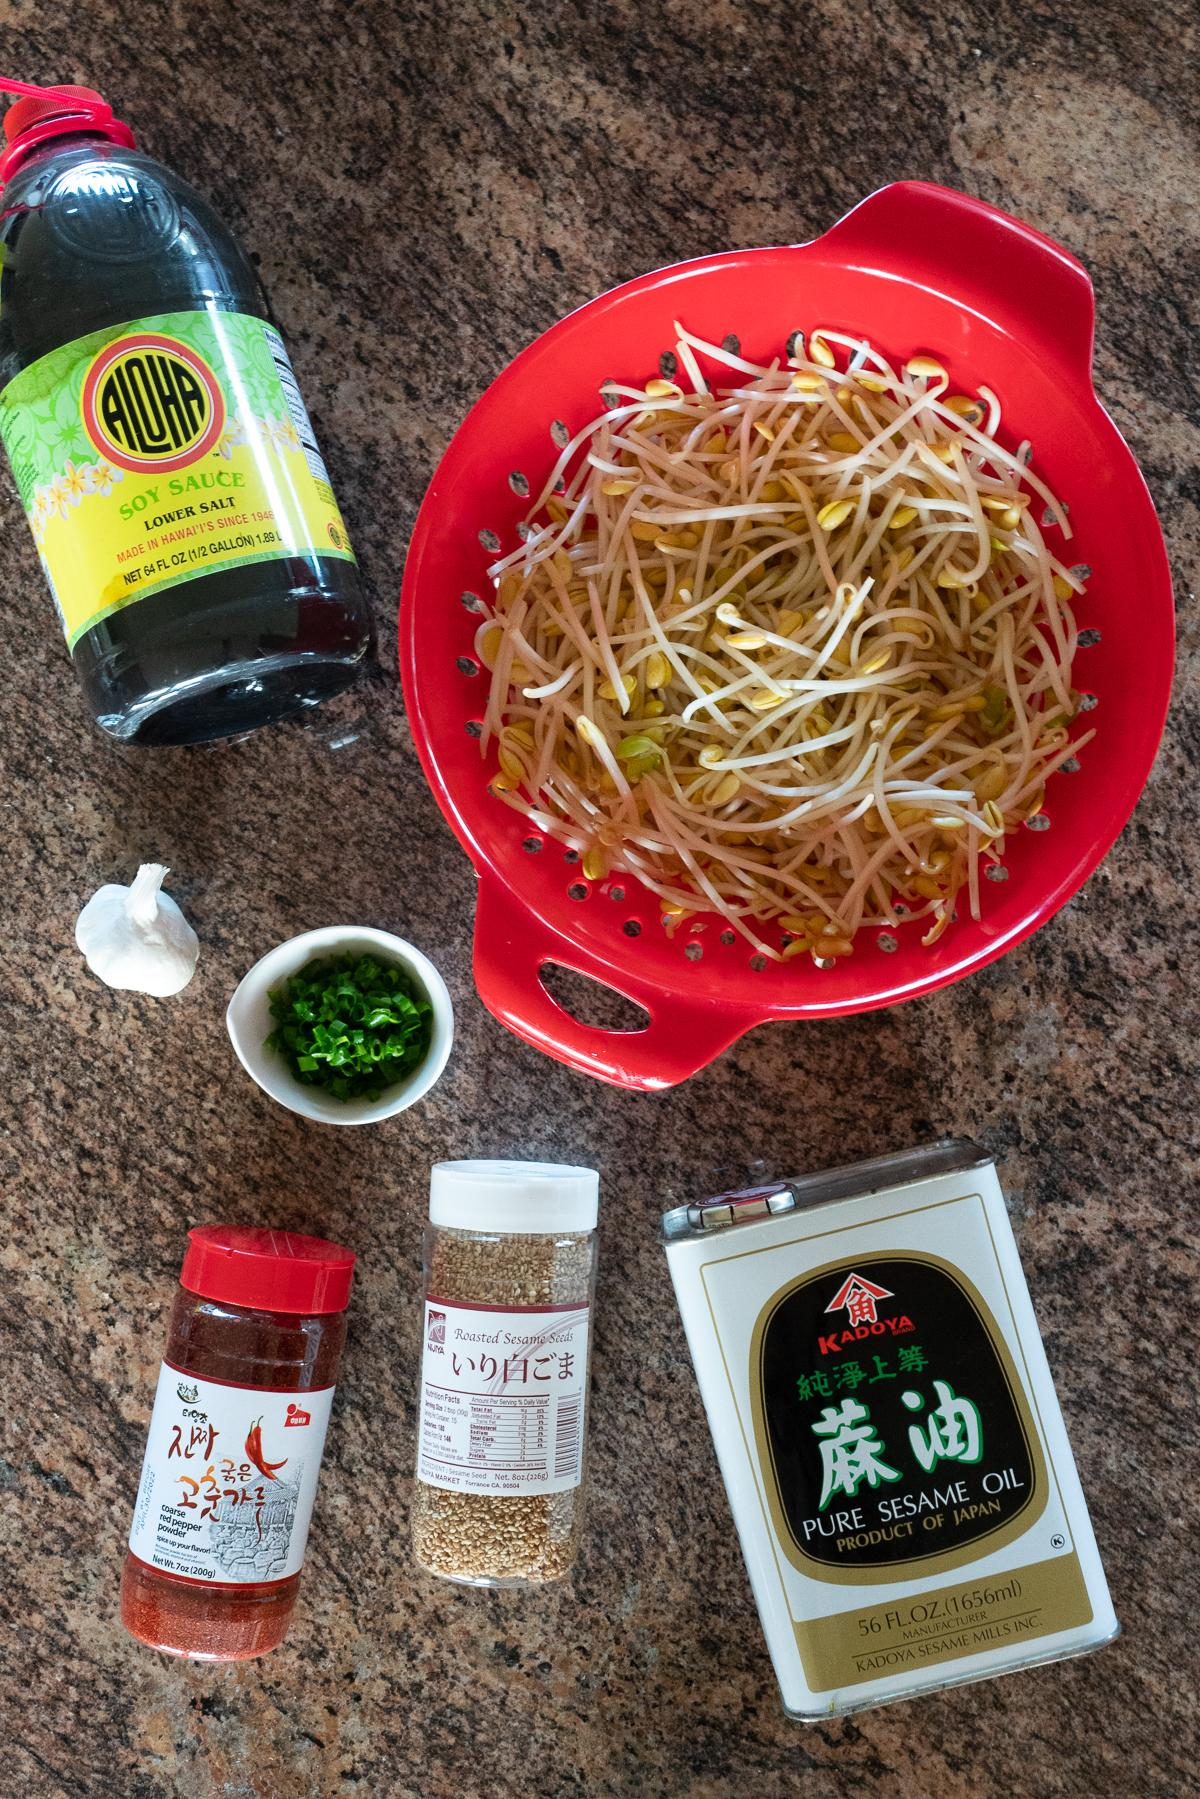 Ingredients for Korean Bean Sprouts laid out on a counter (Soybean Sprouts, Garlic, Sesame Oil, Soy Sauce, Fish Sauce, Green Onions, Korean Chili Pepper Flakes, and Sesame Seeds)